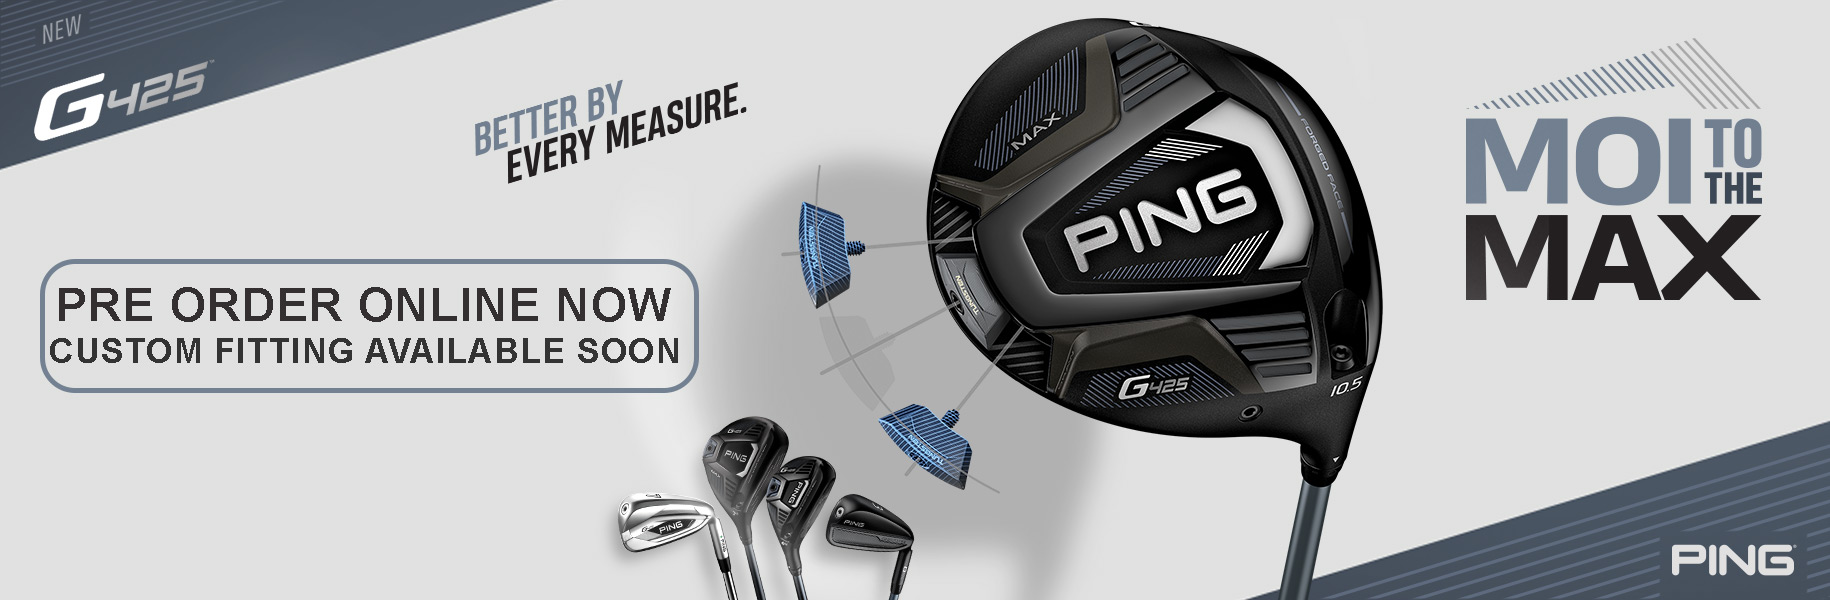 New Ping G425 Available for pre-order now